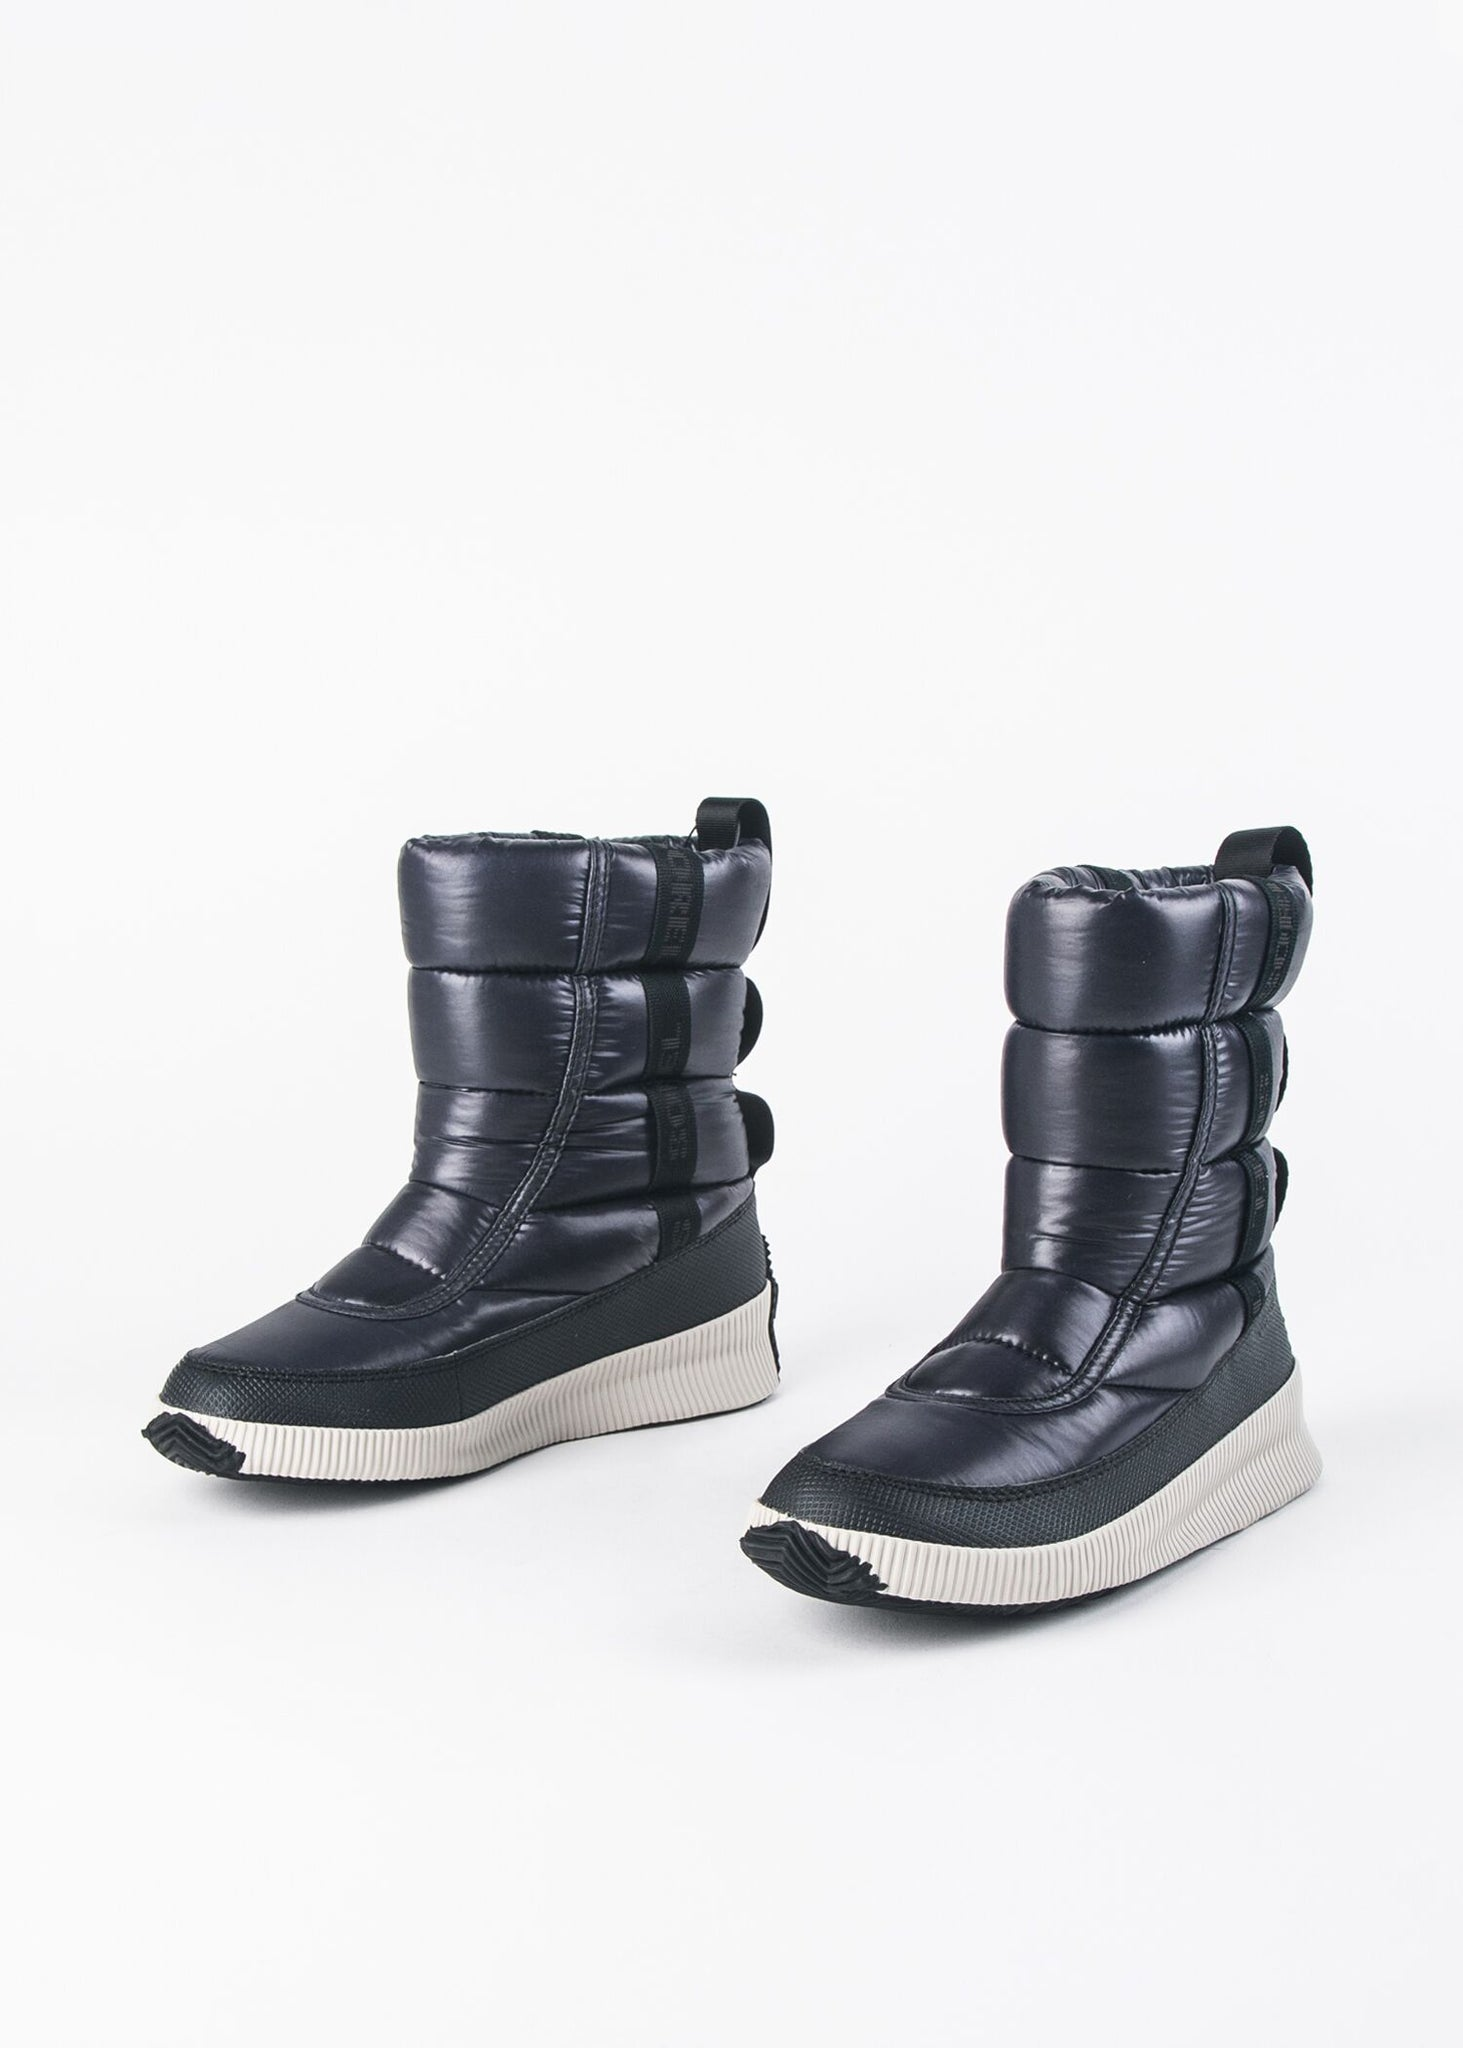 OUTNABOUT-PFM QUILTED WATERPROOF BOOT